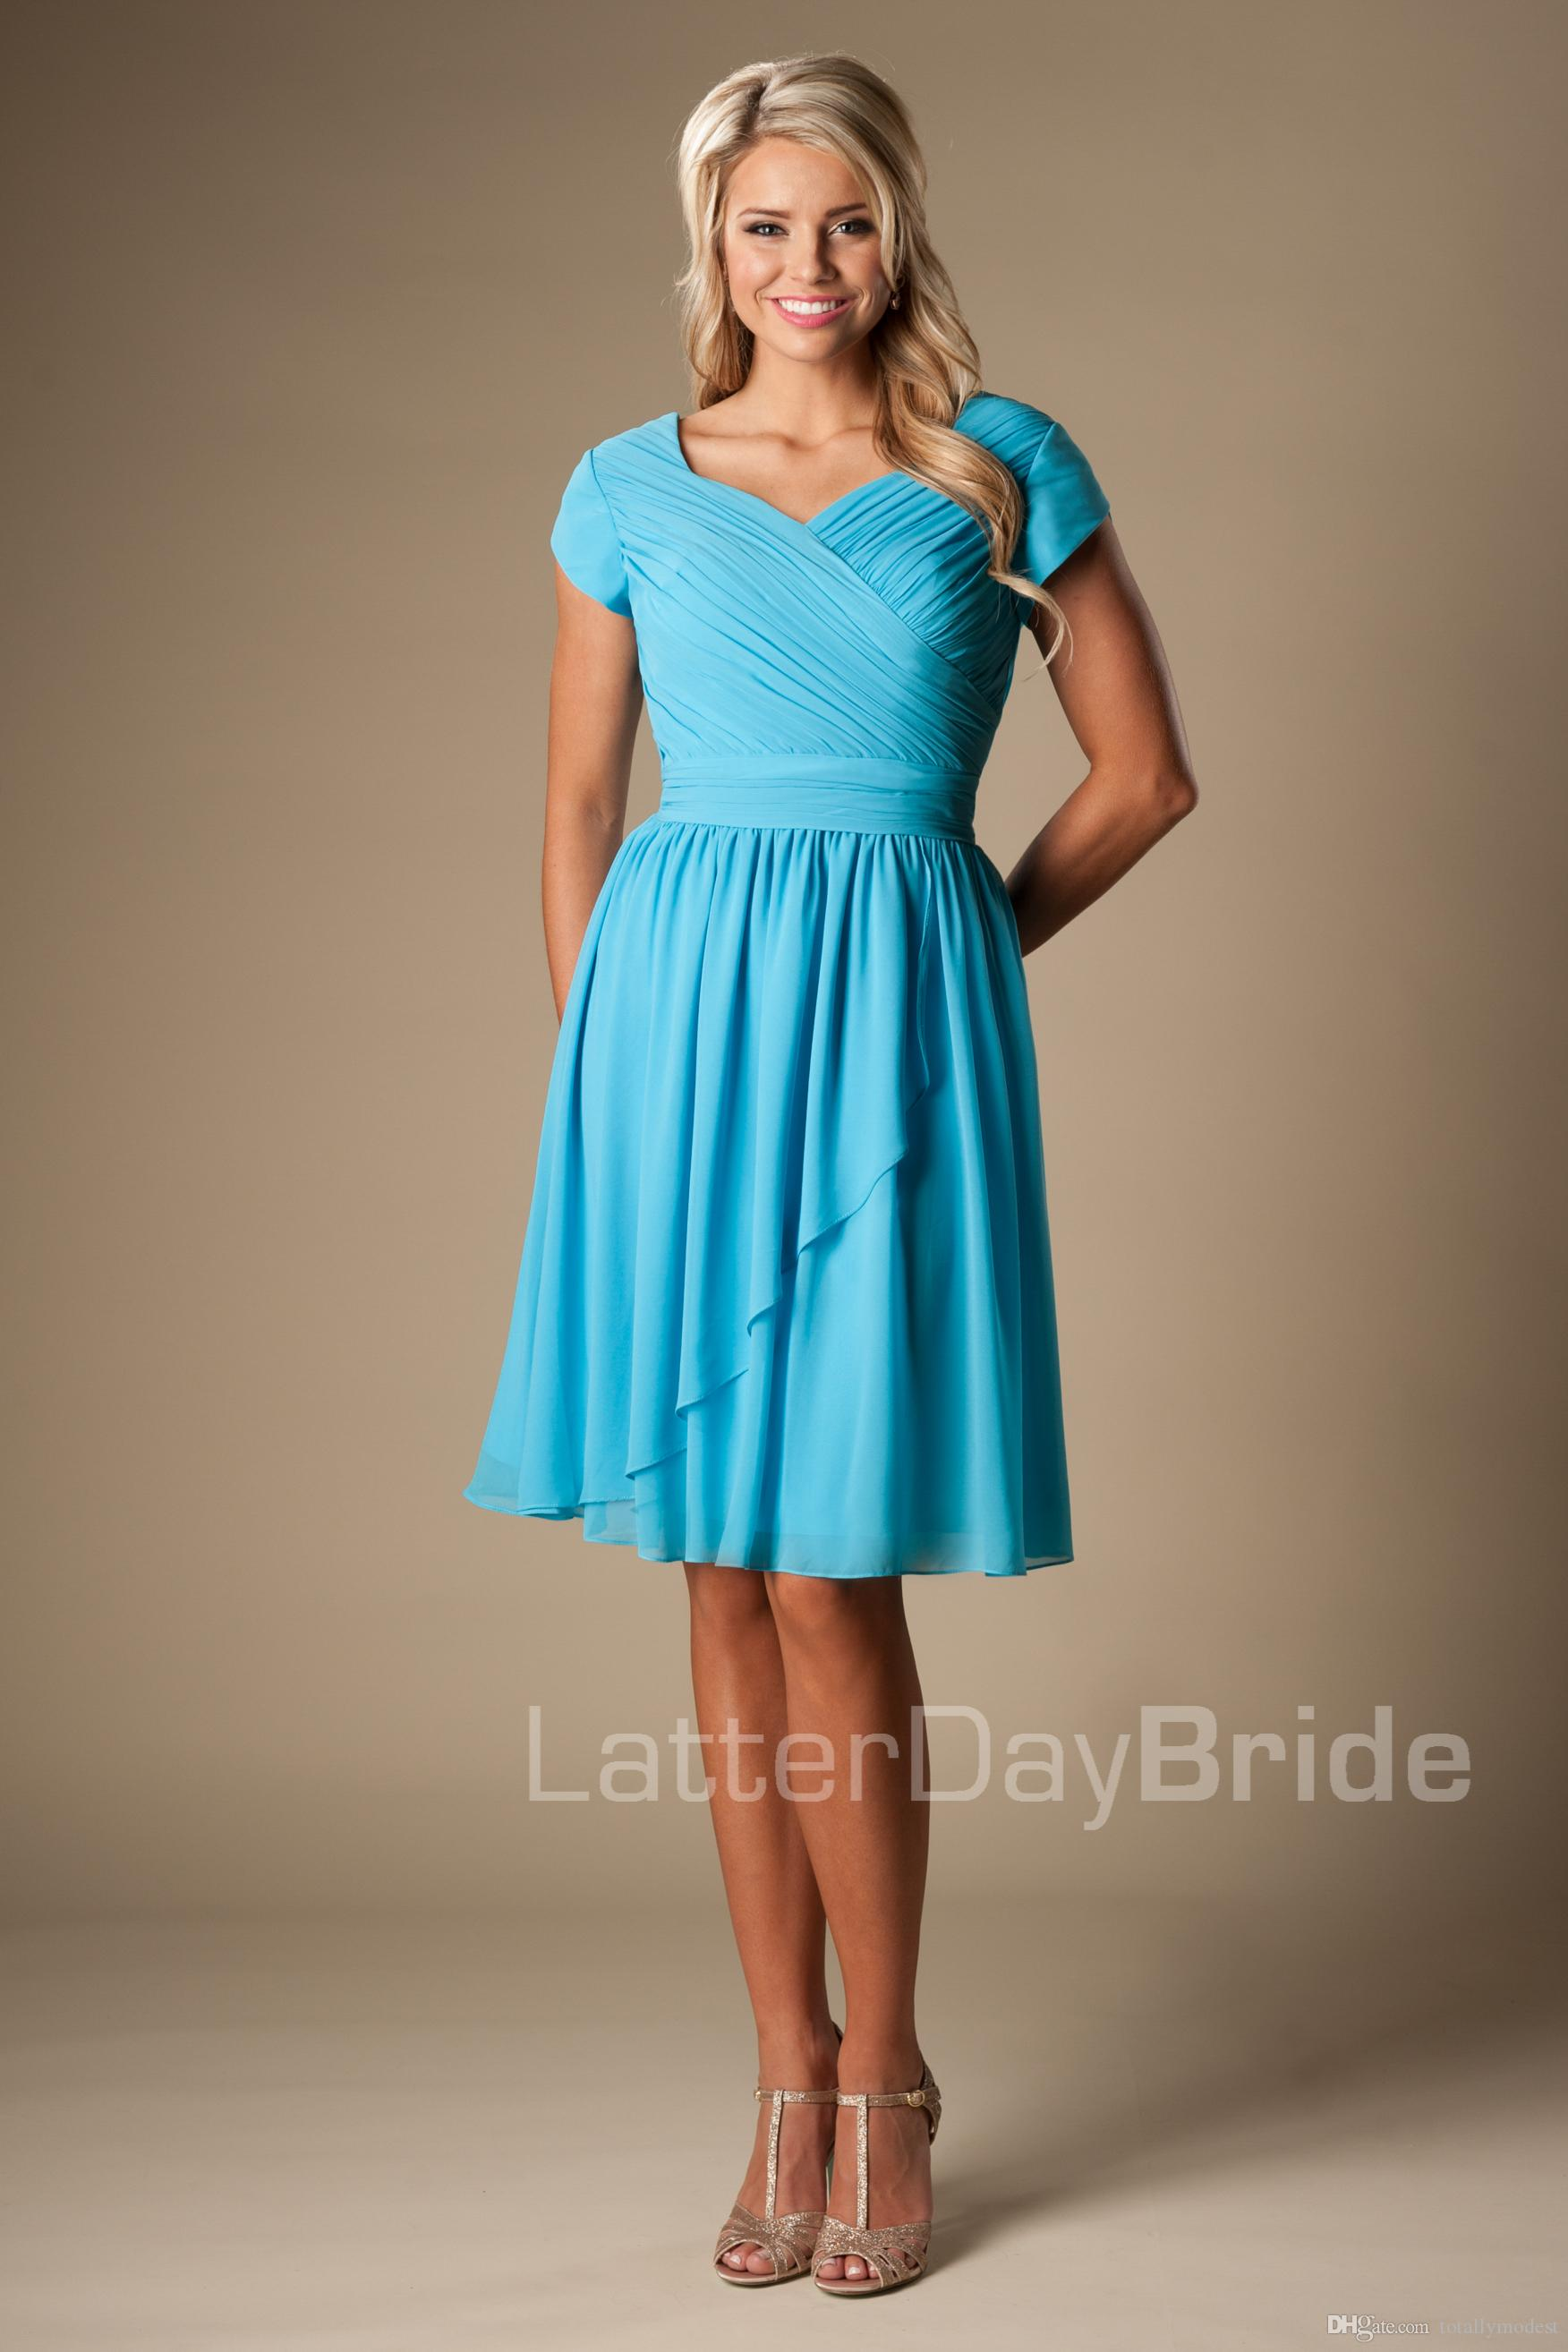 Summer blue short modest bridesmaid dresses with short sleeves summer blue short modest bridesmaid dresses with short sleeves chiffon beach maids of honor dresses a line knee length wedding party dresses dusty rose ombrellifo Gallery